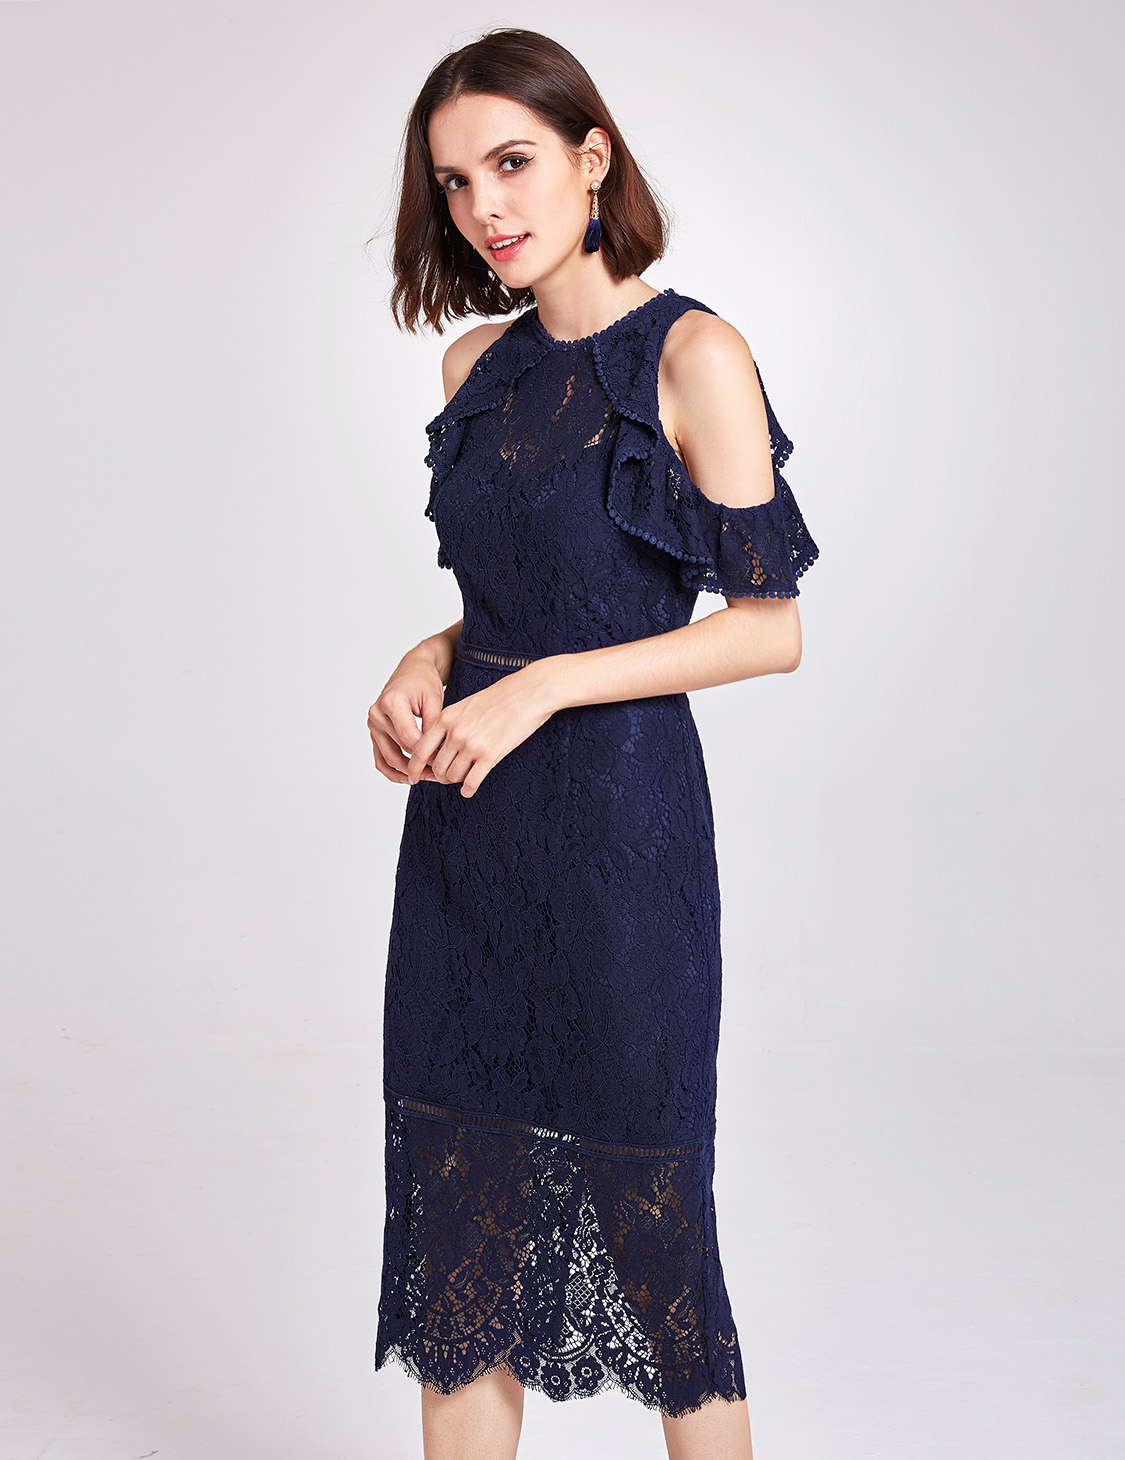 34a64d5b30f Details about Alisa Pan Lace Cocktail Dress Cold Shoulder Navy Blue Midi Casual  Dresses 05920